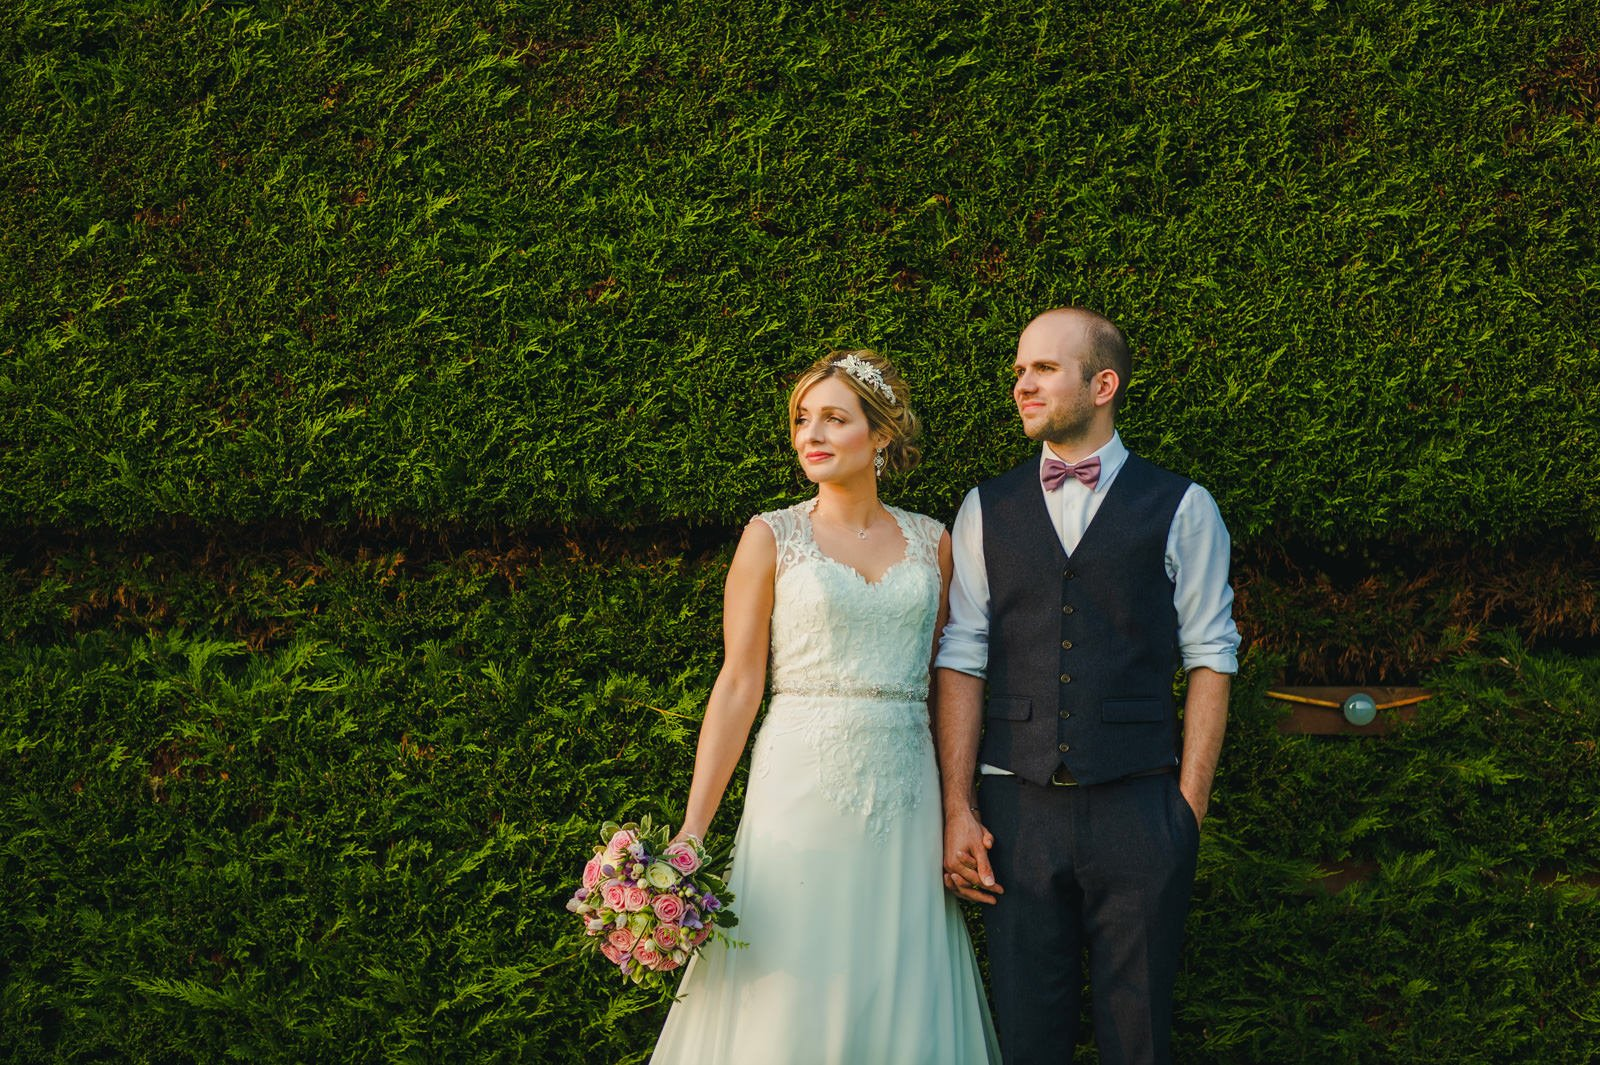 millers of netley wedding 99 - Millers Of Netley wedding, Dorrington, Shrewsbury | Emma + Ben